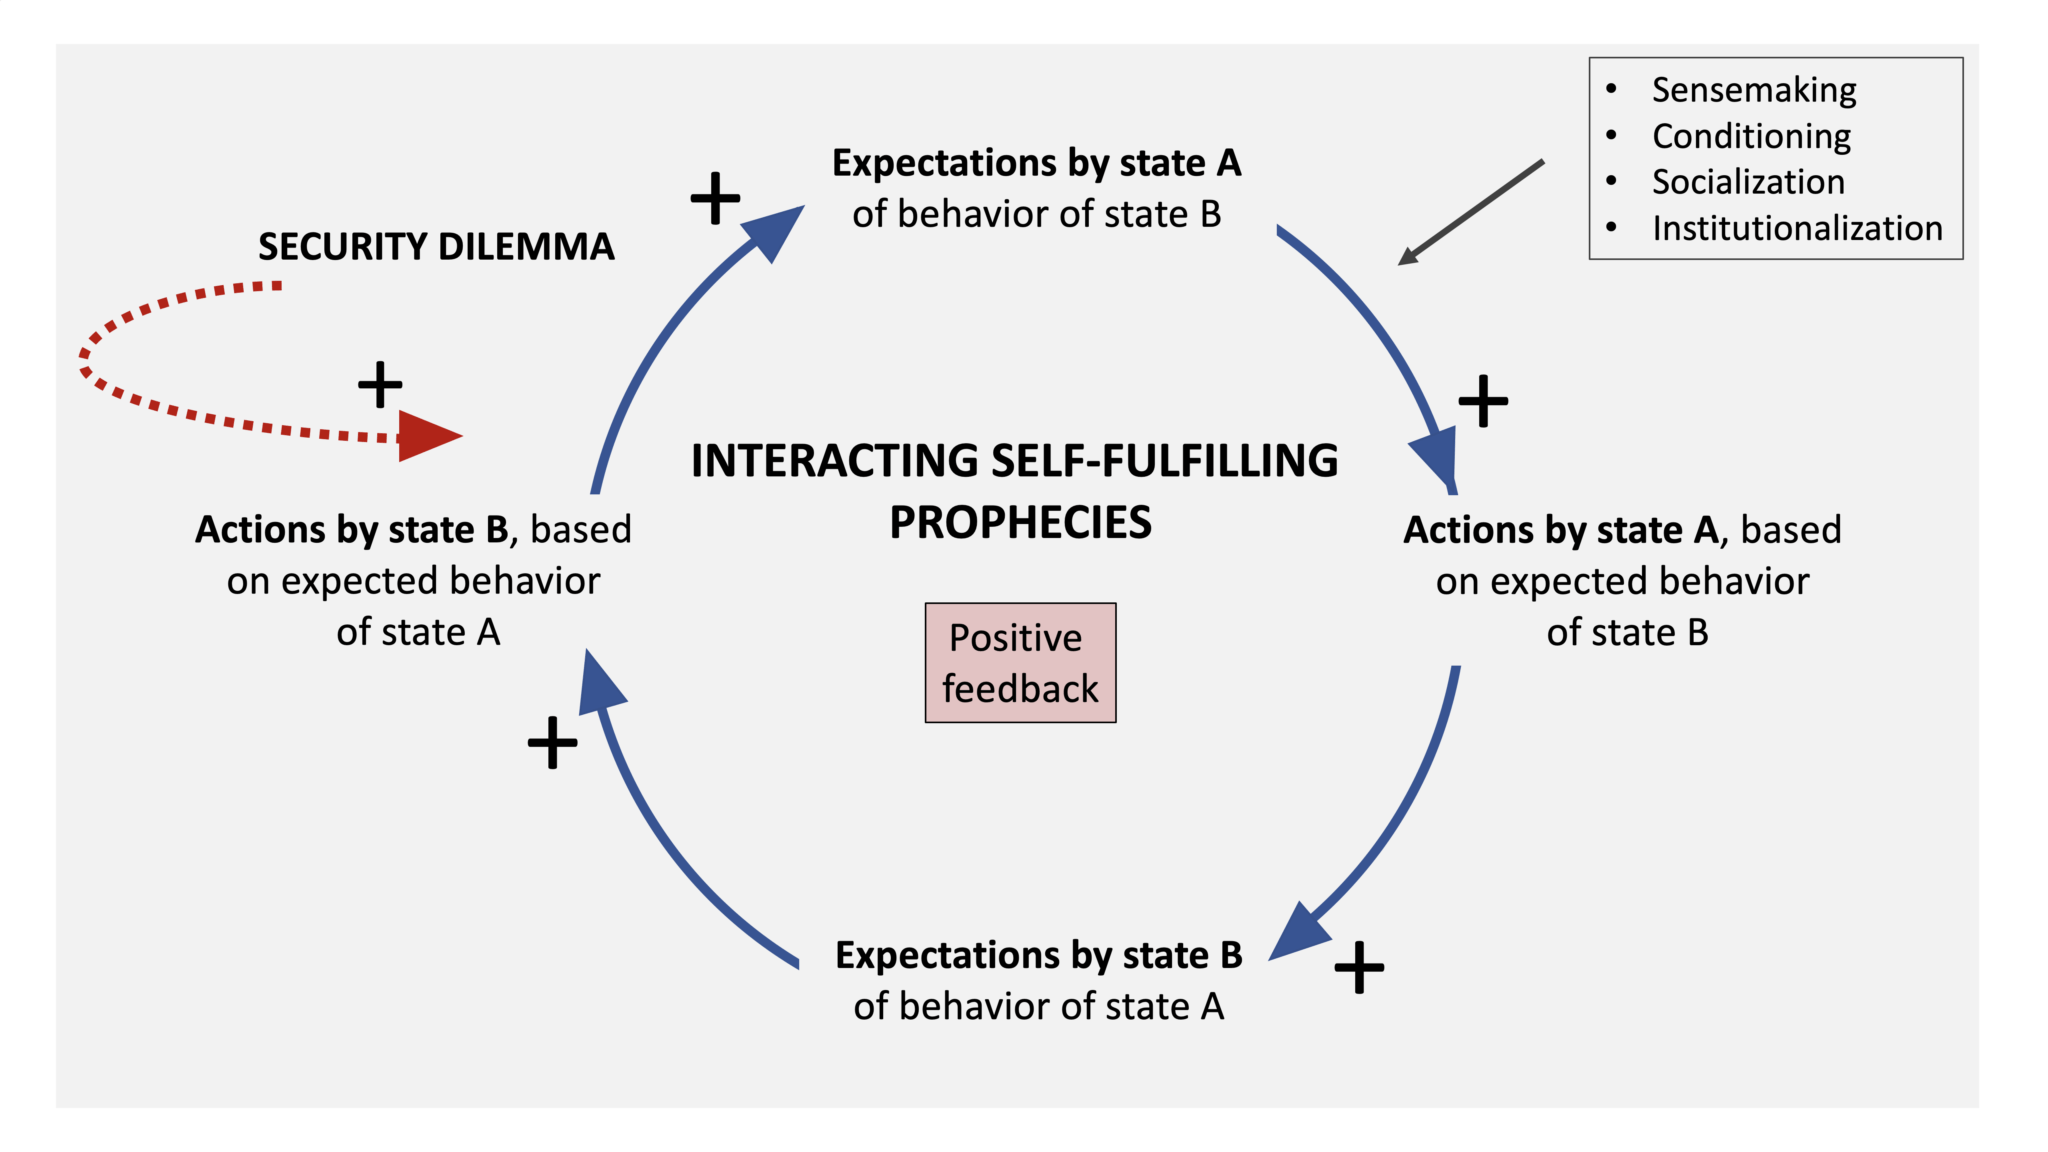 Interacting self-fulfilling prophecies: Buildup of tensions